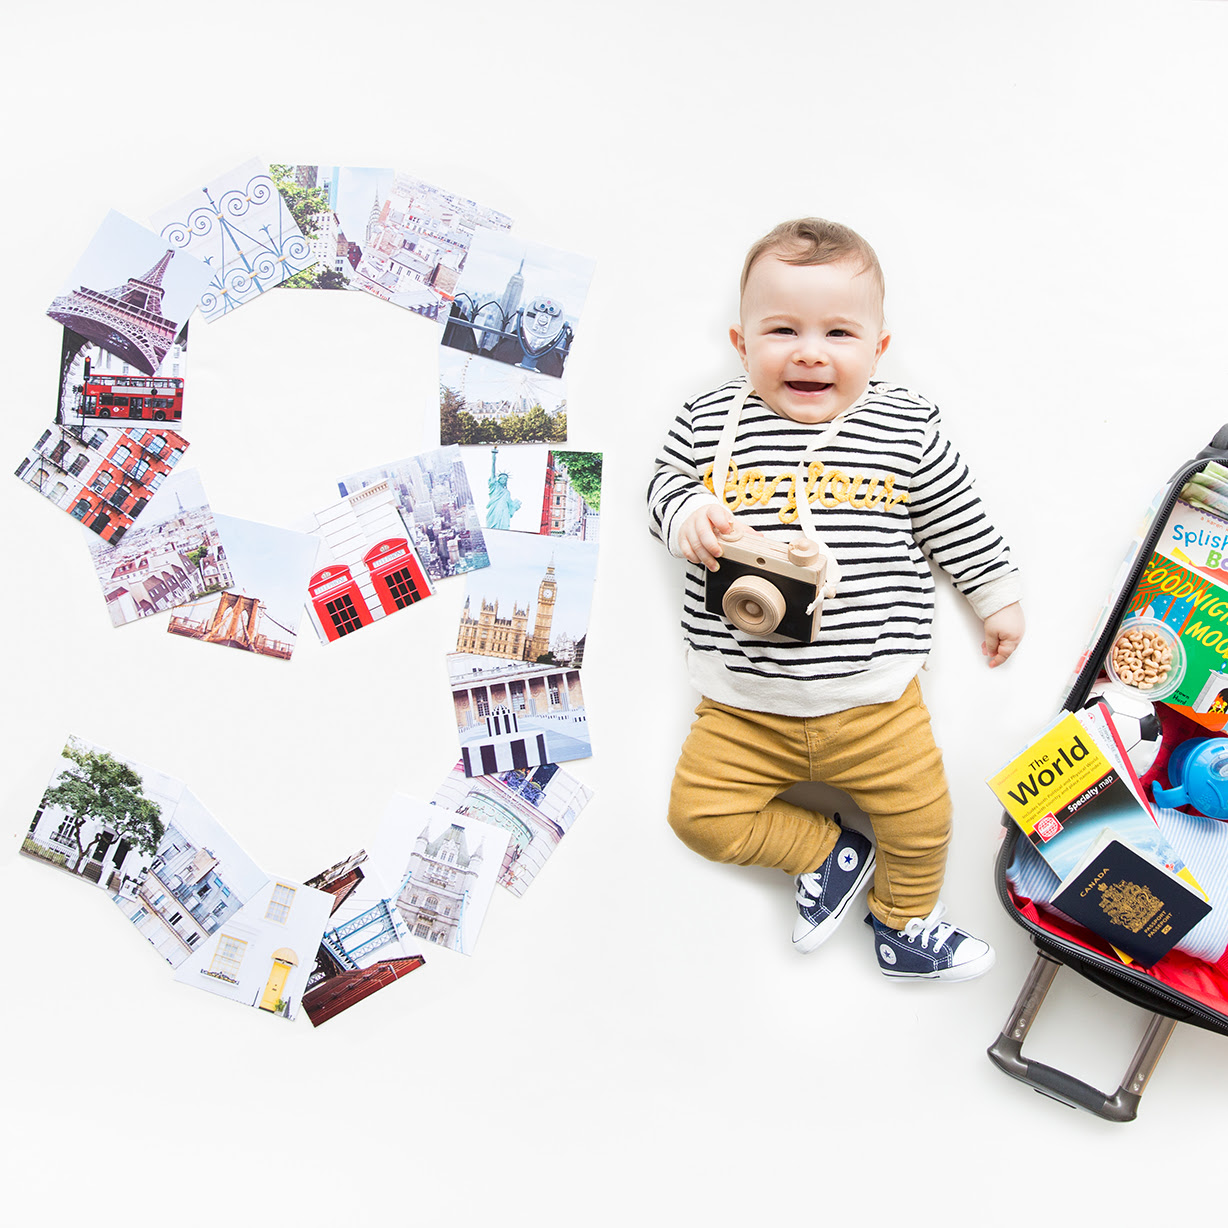 4 Months Baby Boy Photoshoot Ideas At Home Baby Viewer